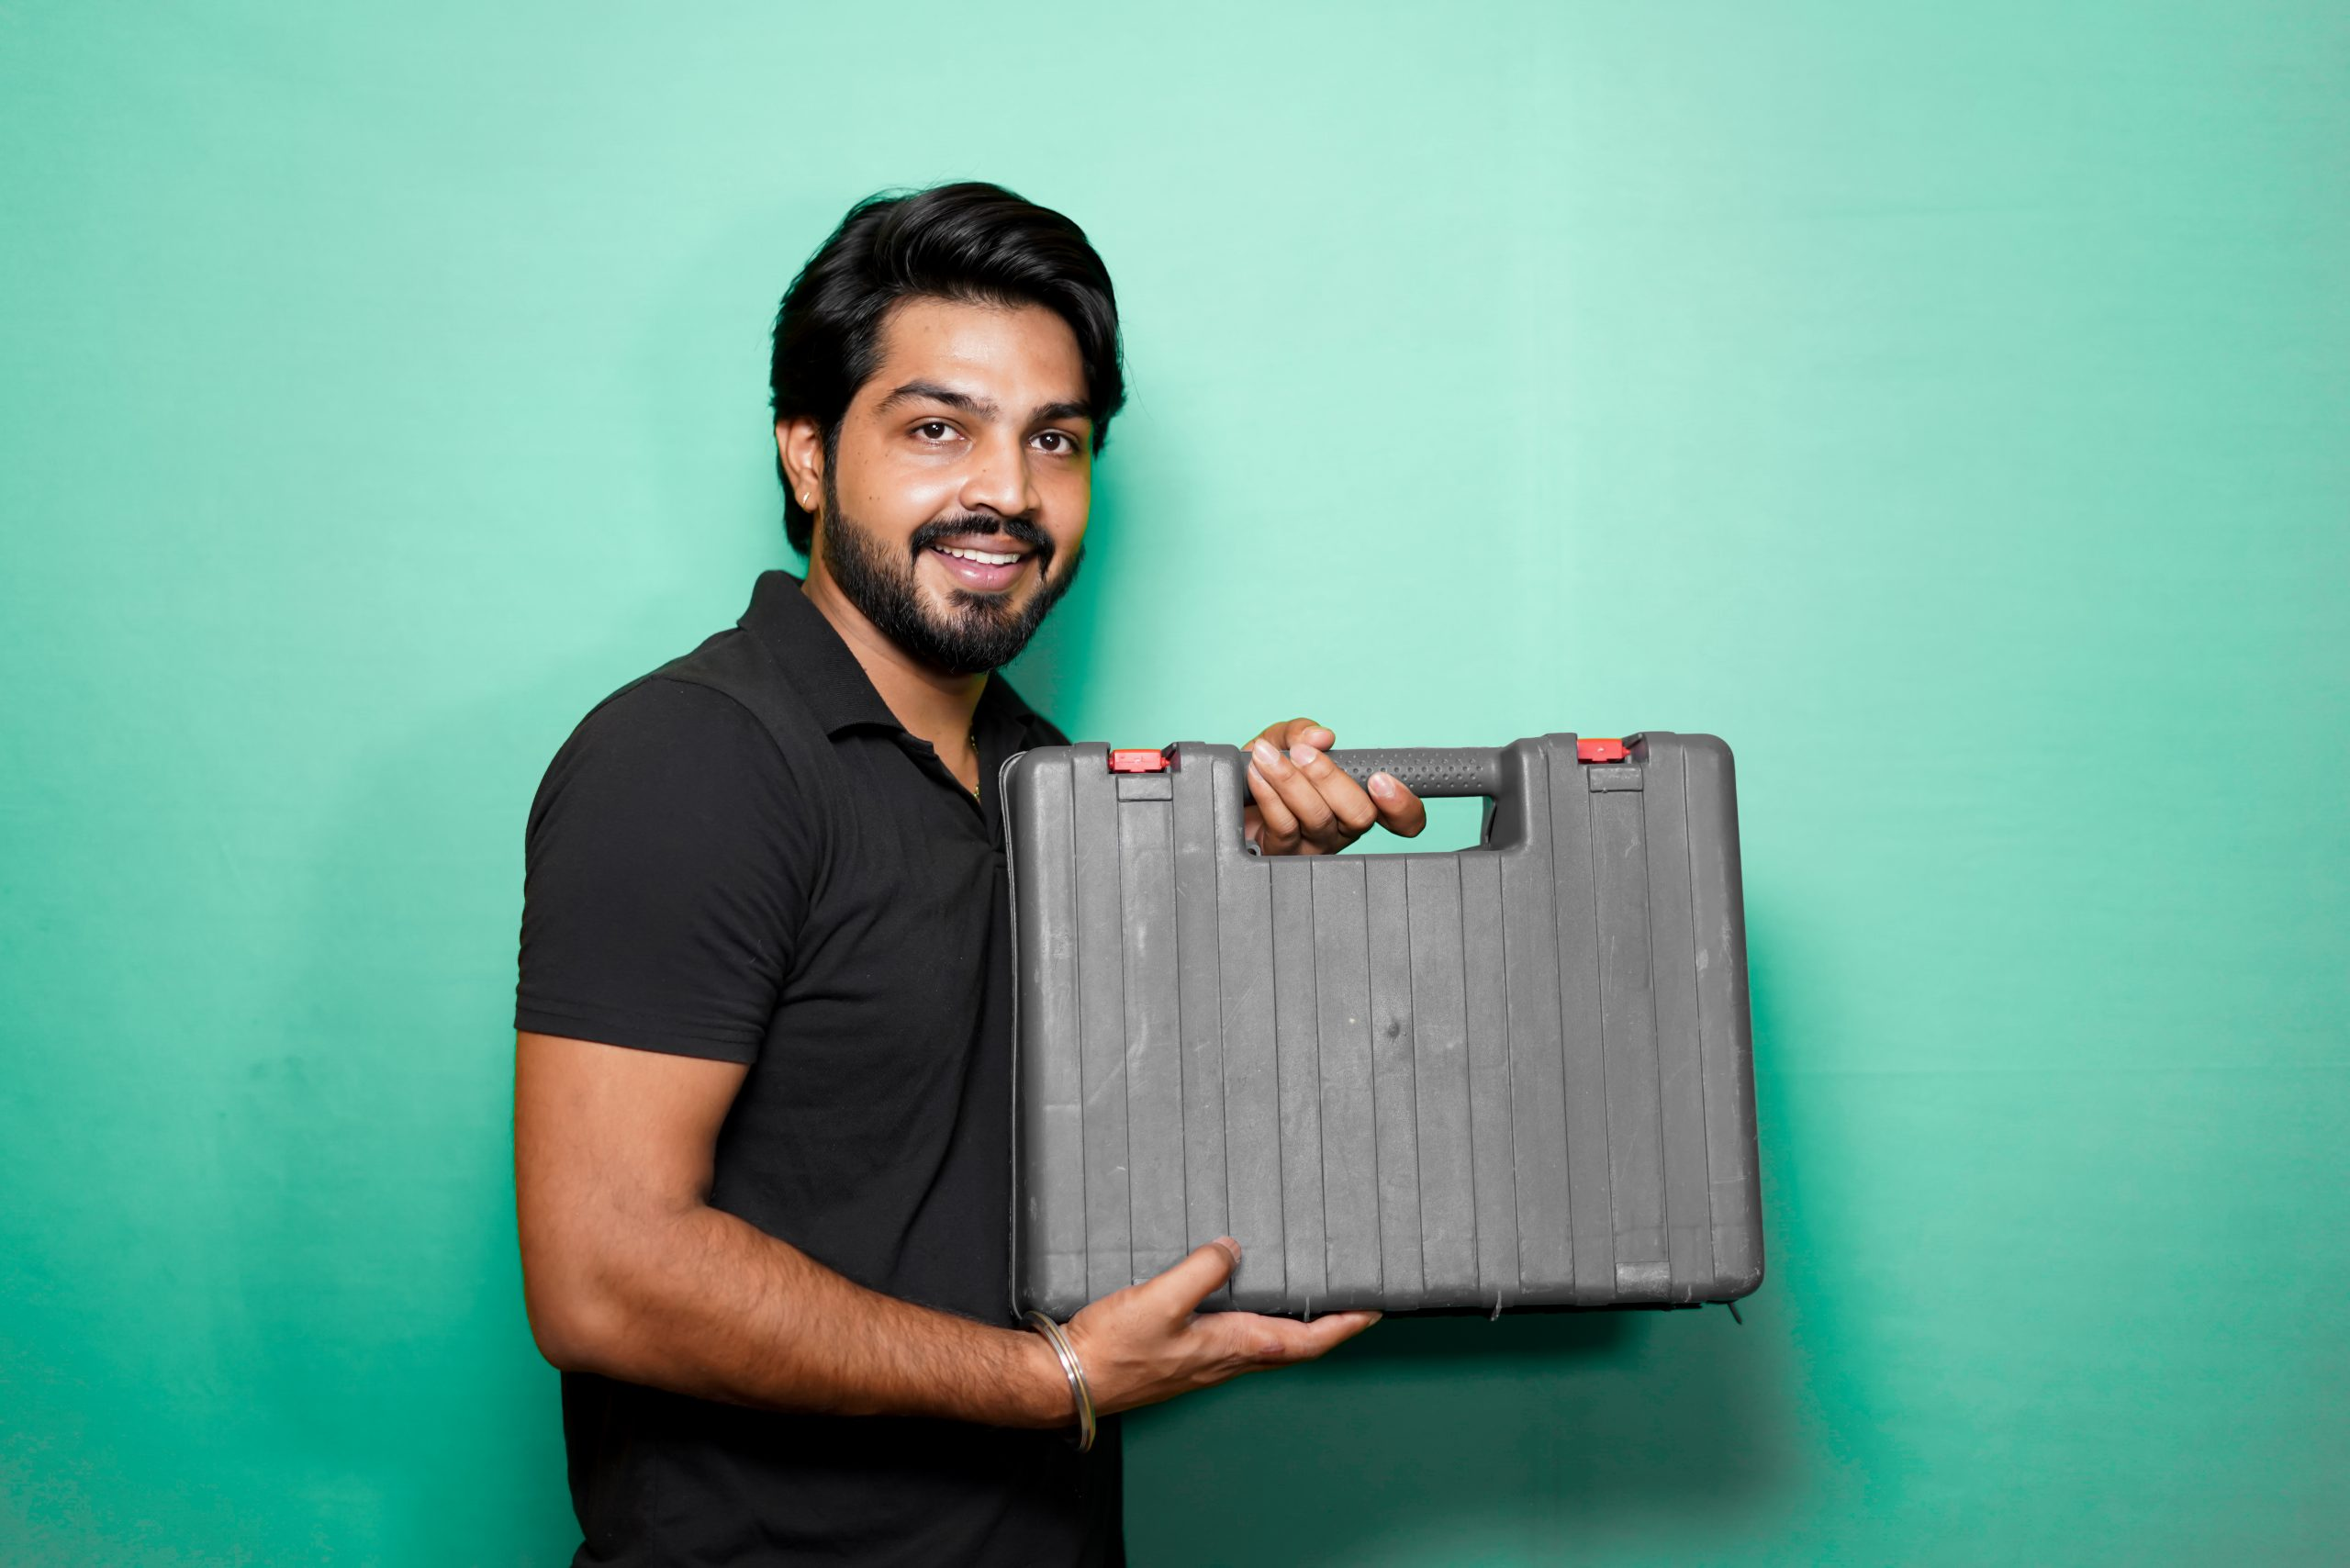 Man holding a toolbox